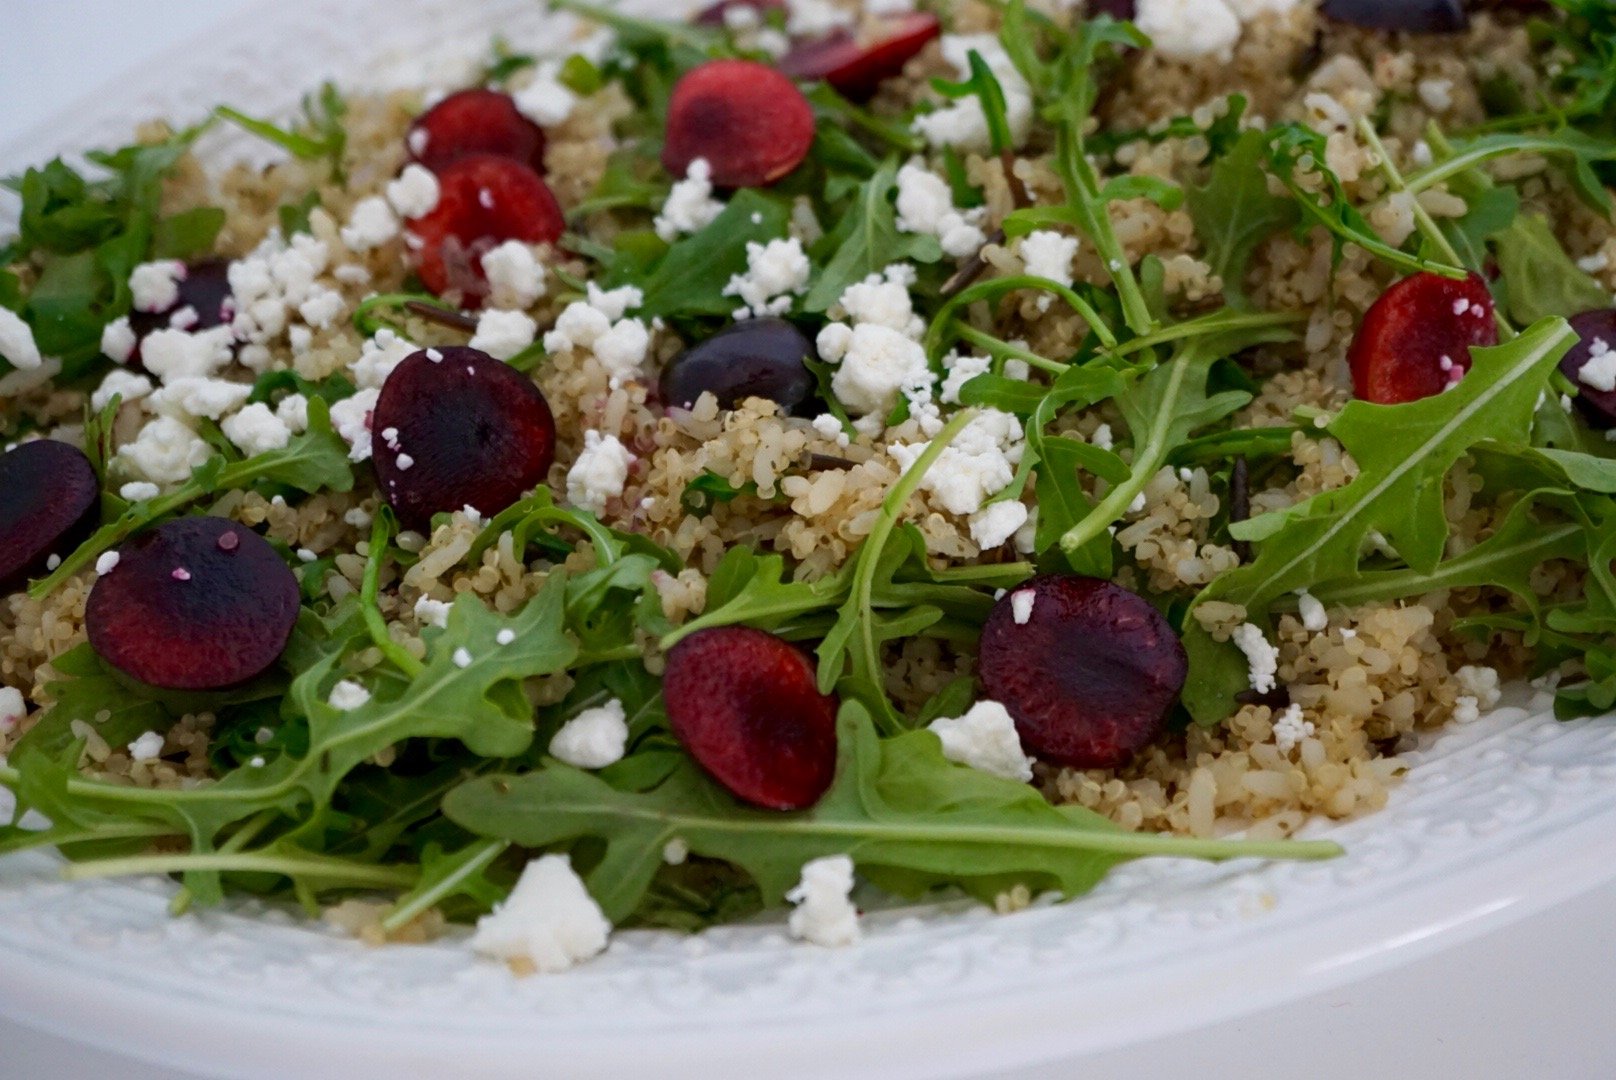 brown-rice-quinoa-arugula-goat-cheese-cherry-salad dishitgirl.jpg